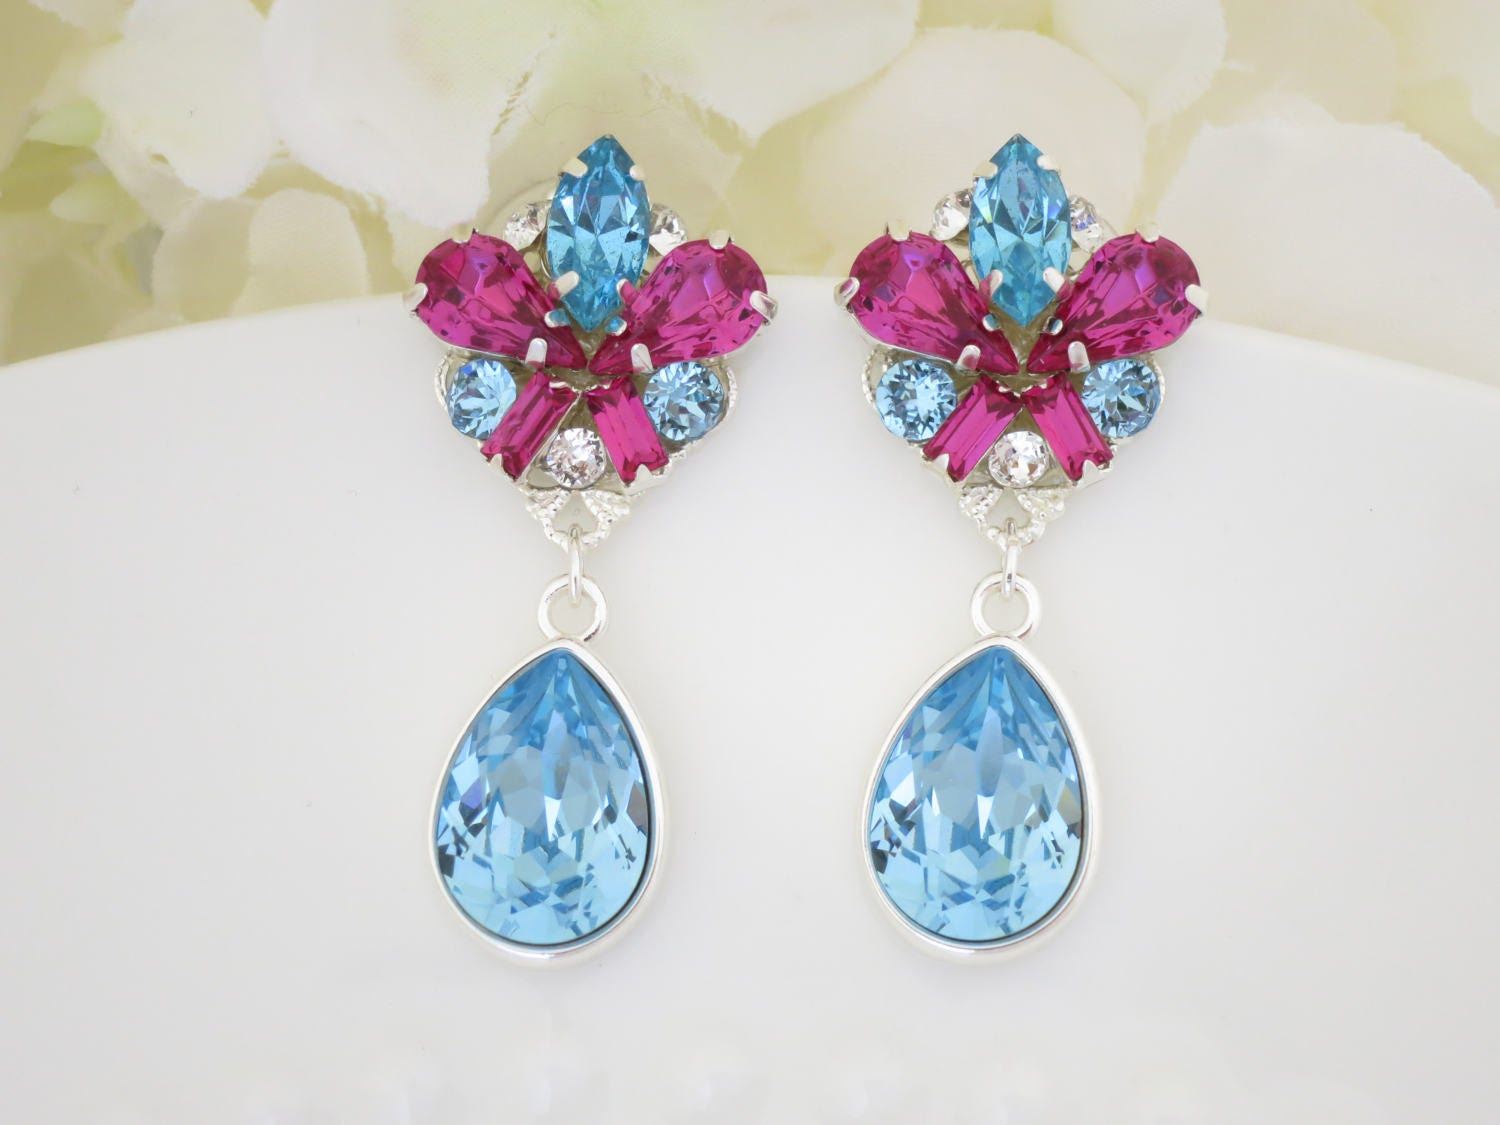 Aqua and Fuchsia teardrop earring, Swarovski crystal post earring, Unique drop earring